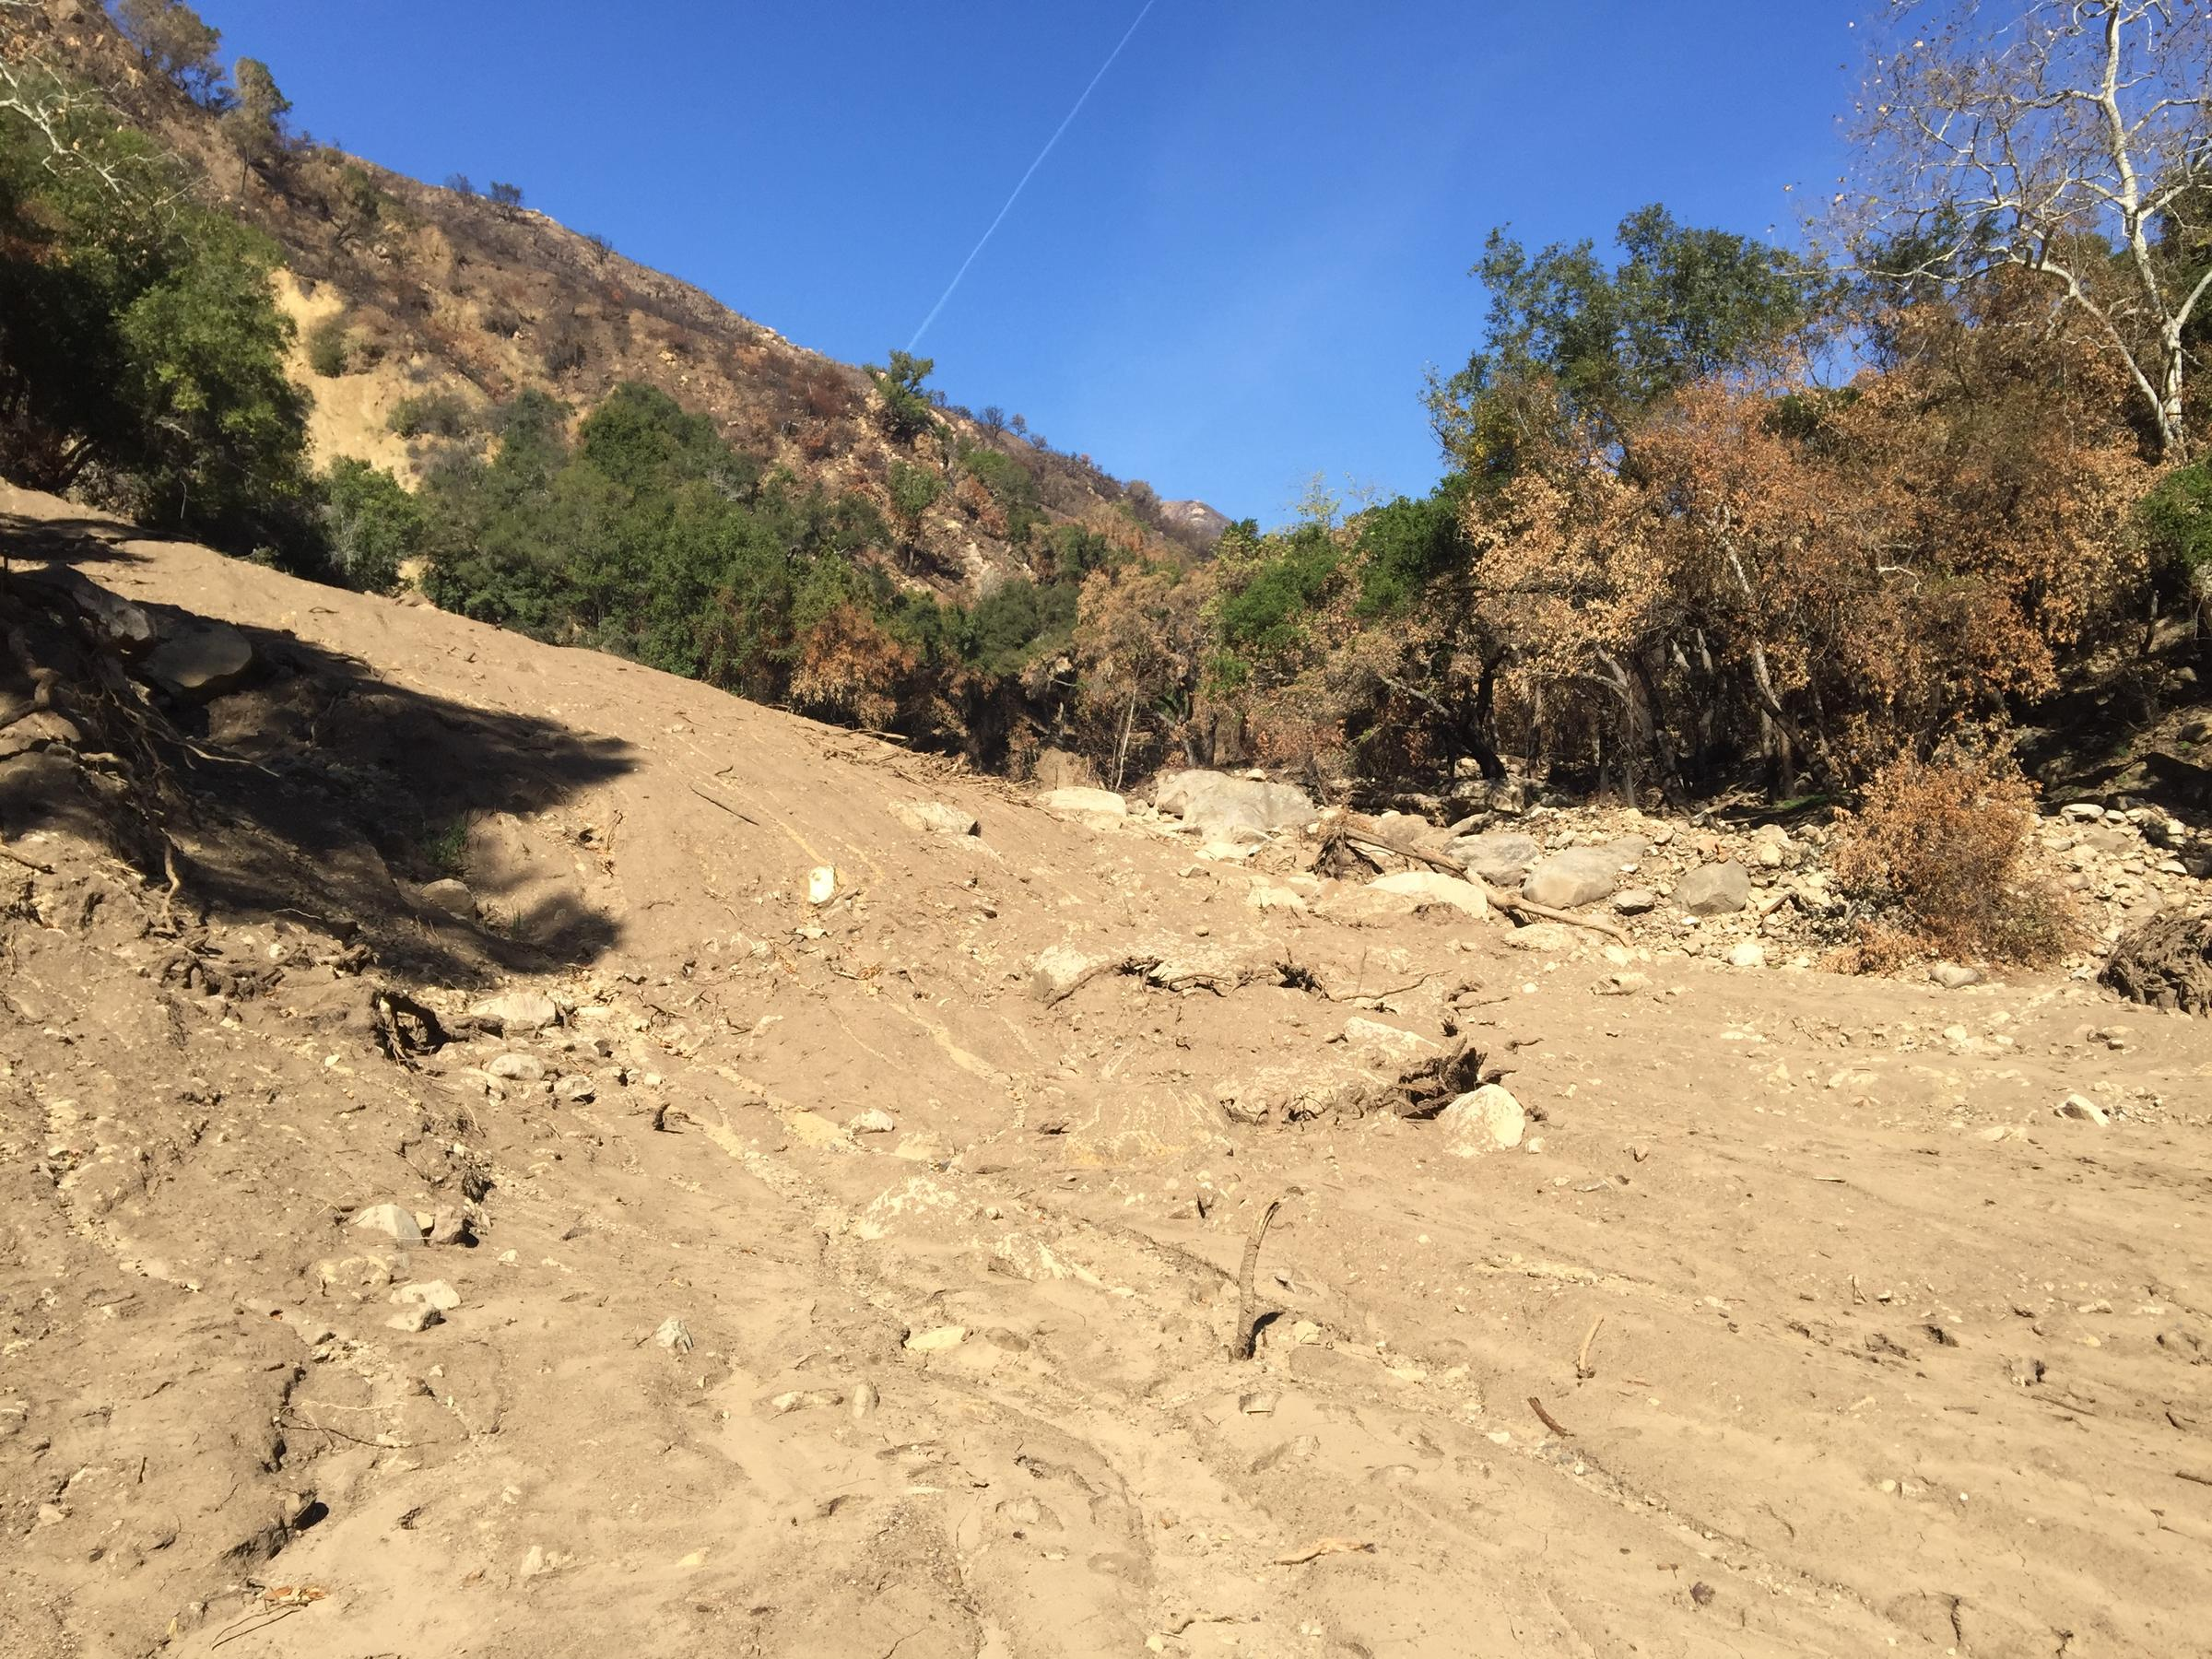 Mudslides threaten California amid heavy rain